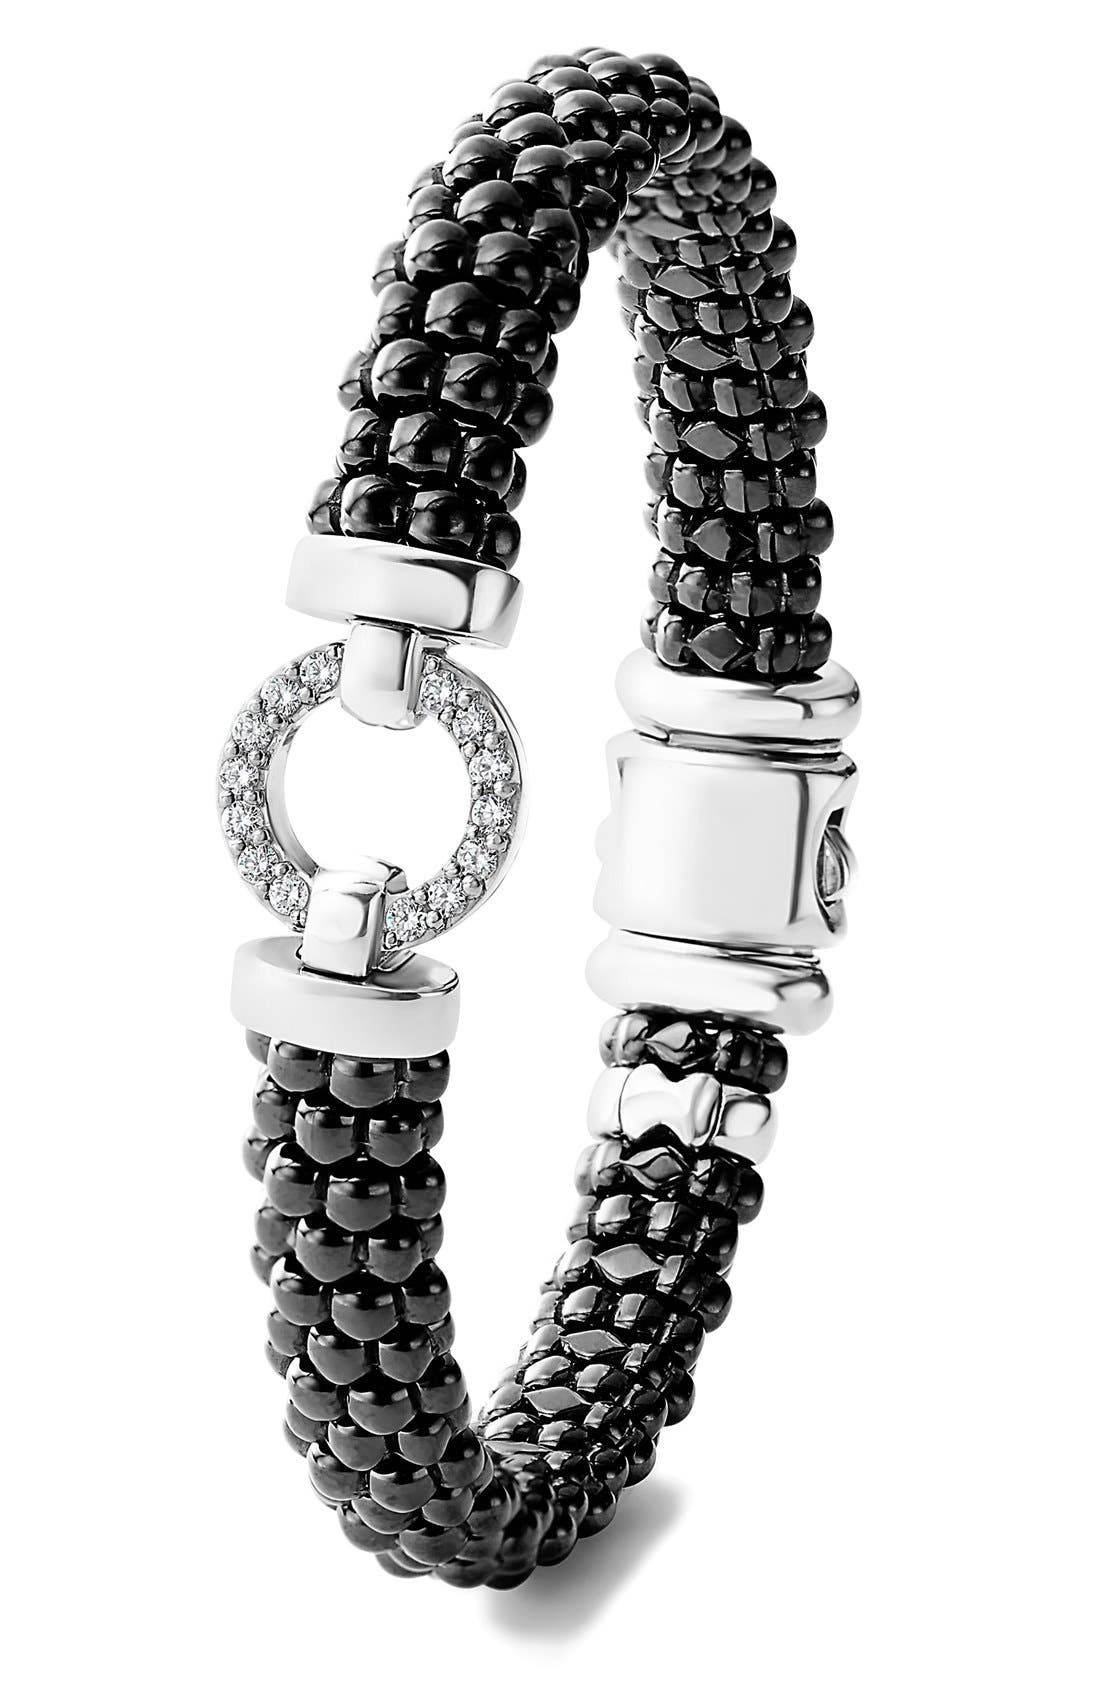 Black Caviar Bracelet,                             Alternate thumbnail 3, color,                             BLACK/ SILVER/ GOLD